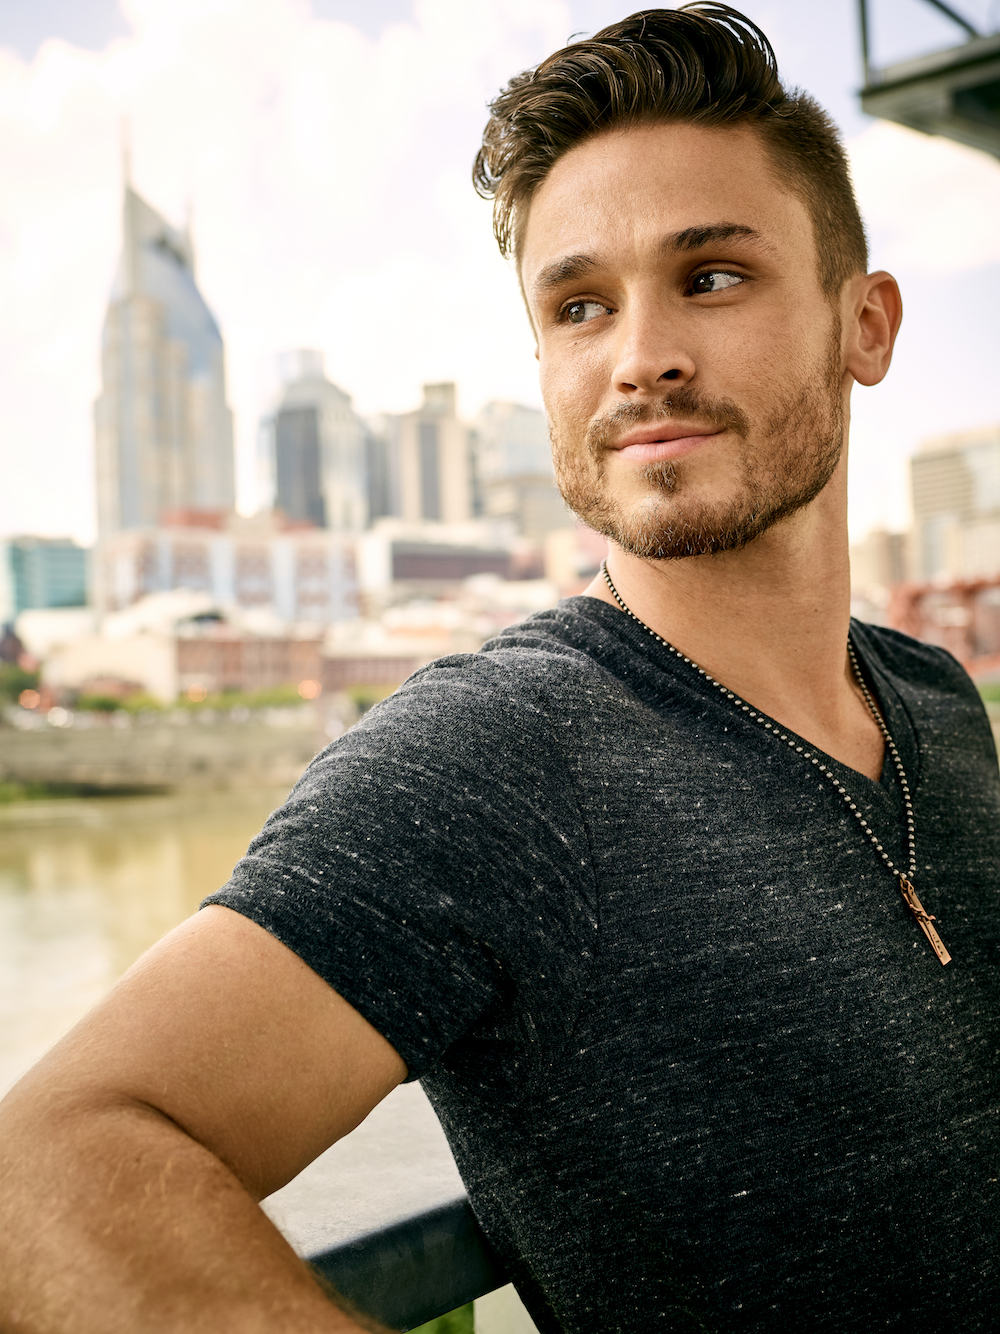 Music City, CMT, reality